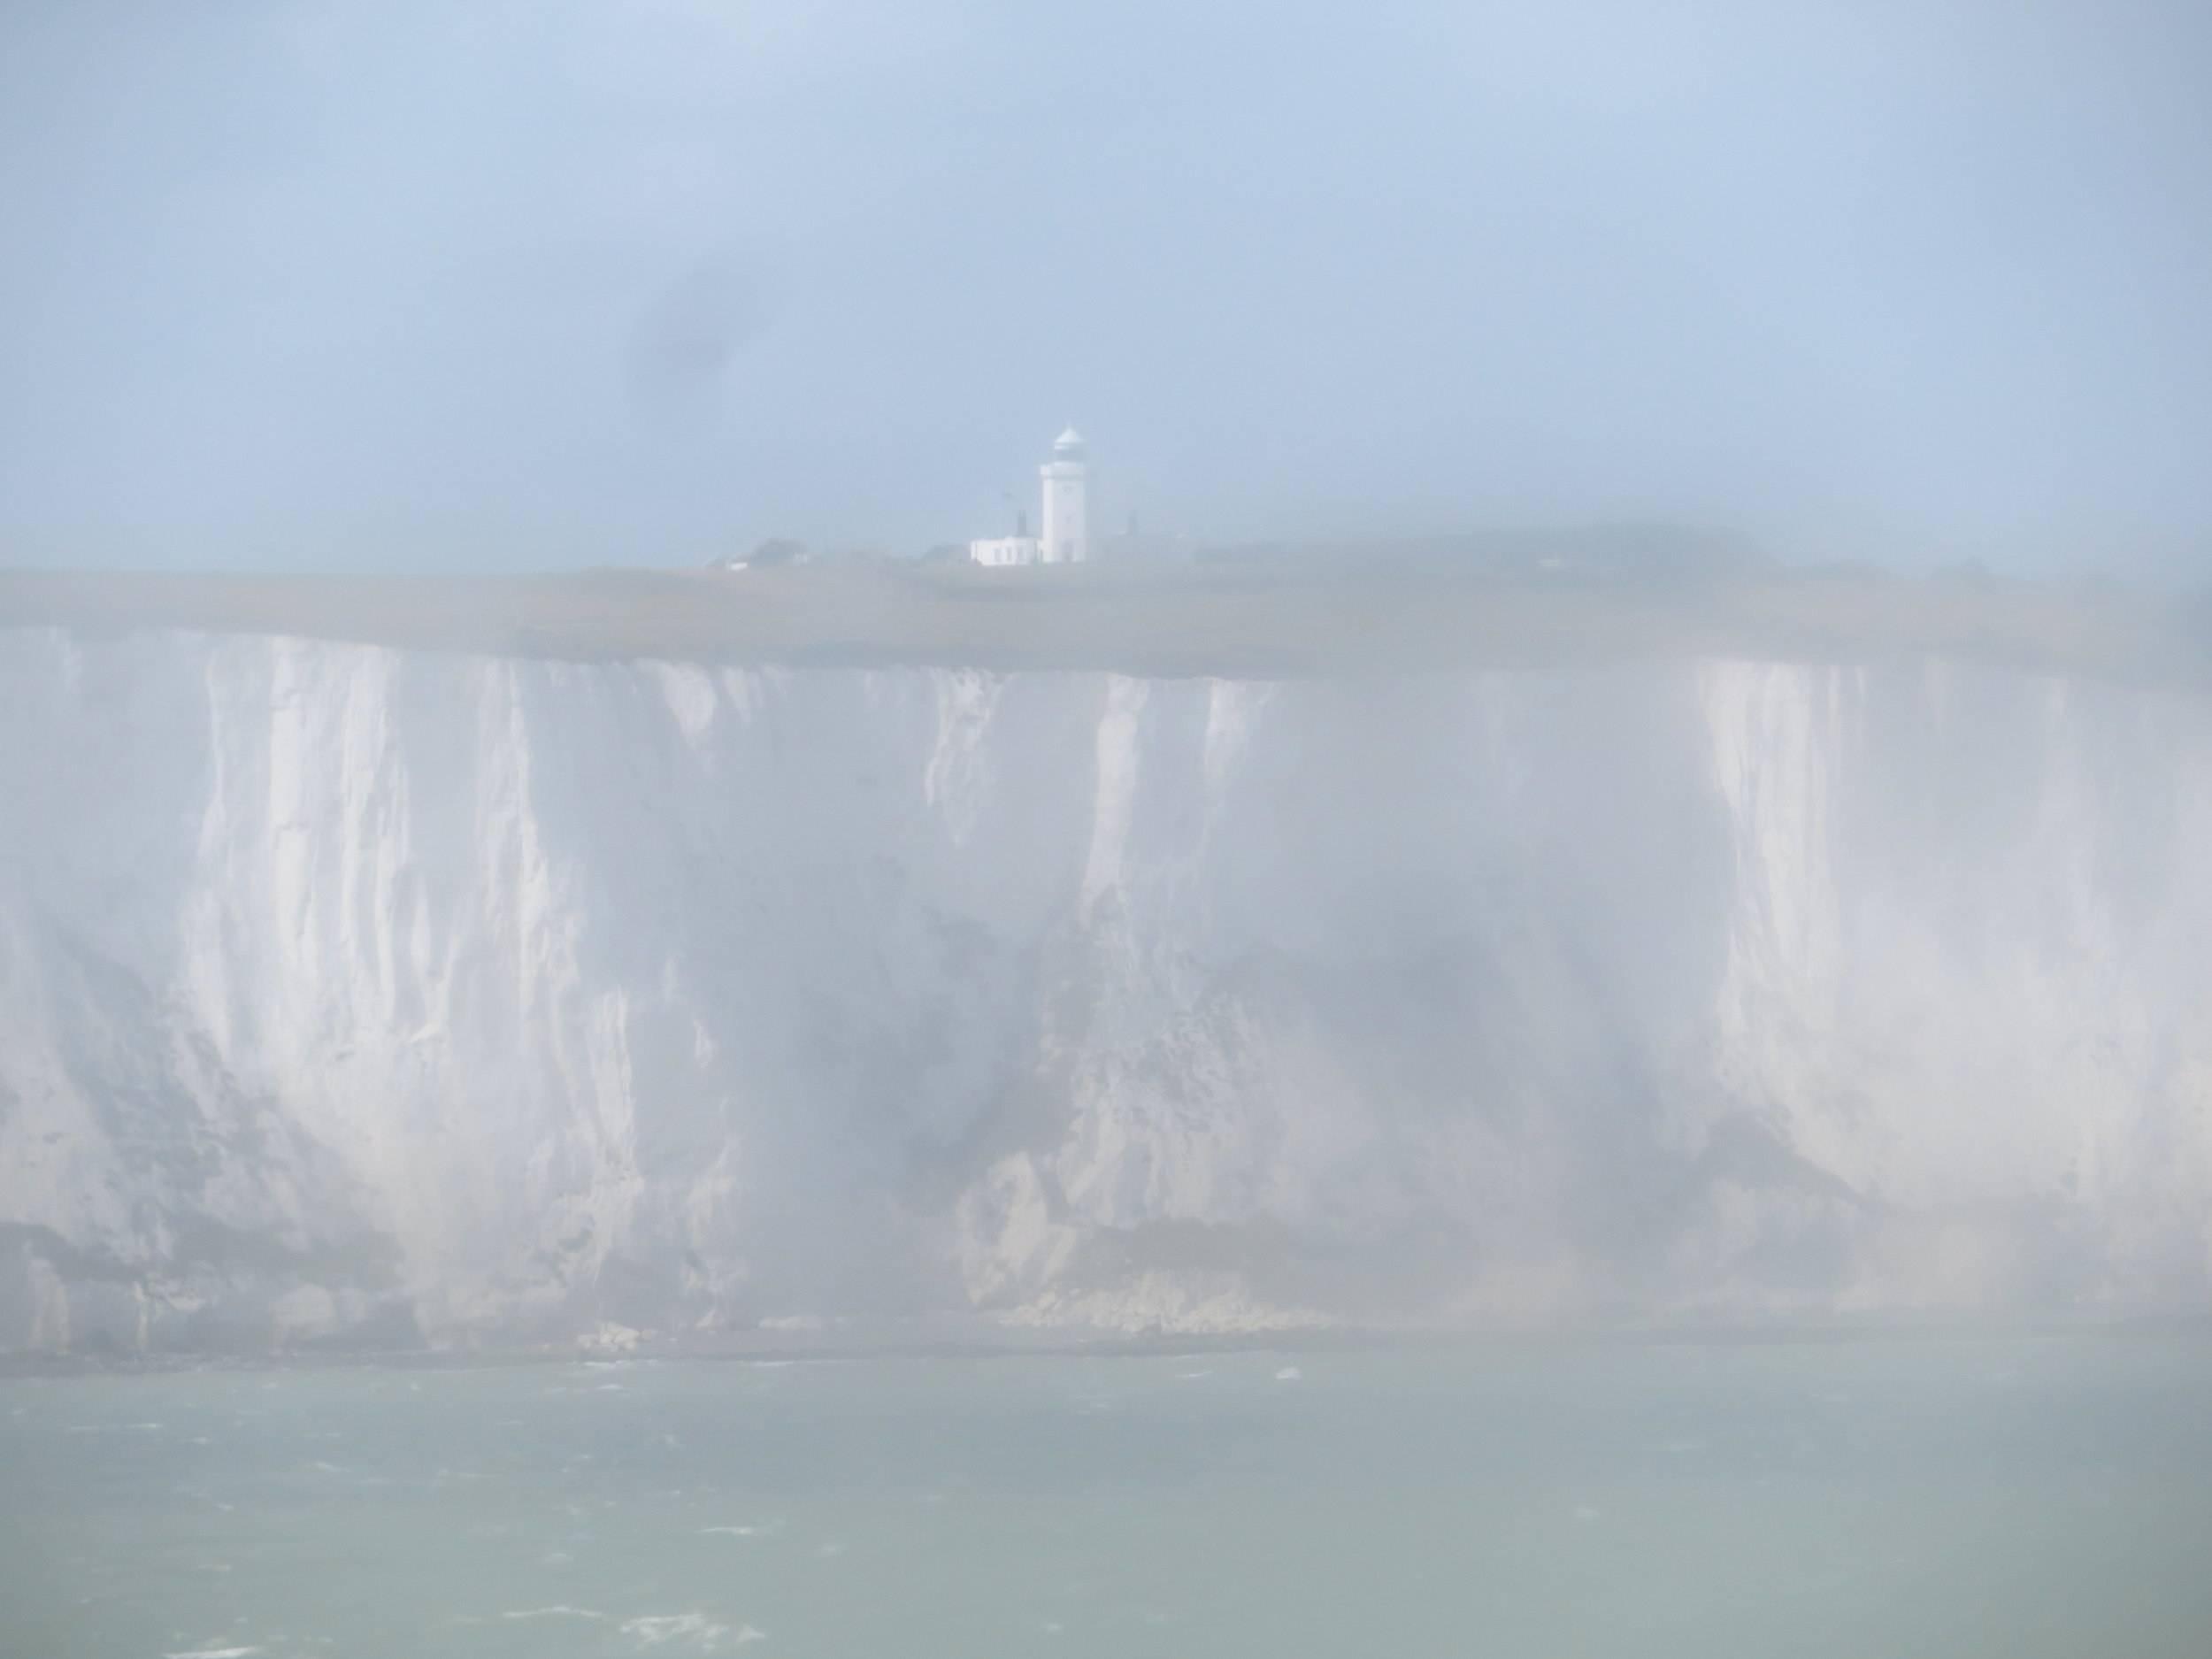 Through the salt sprayed windows on the ferry, we could make out a blurry view of the White Cliffs of Dover and the Dover Light.